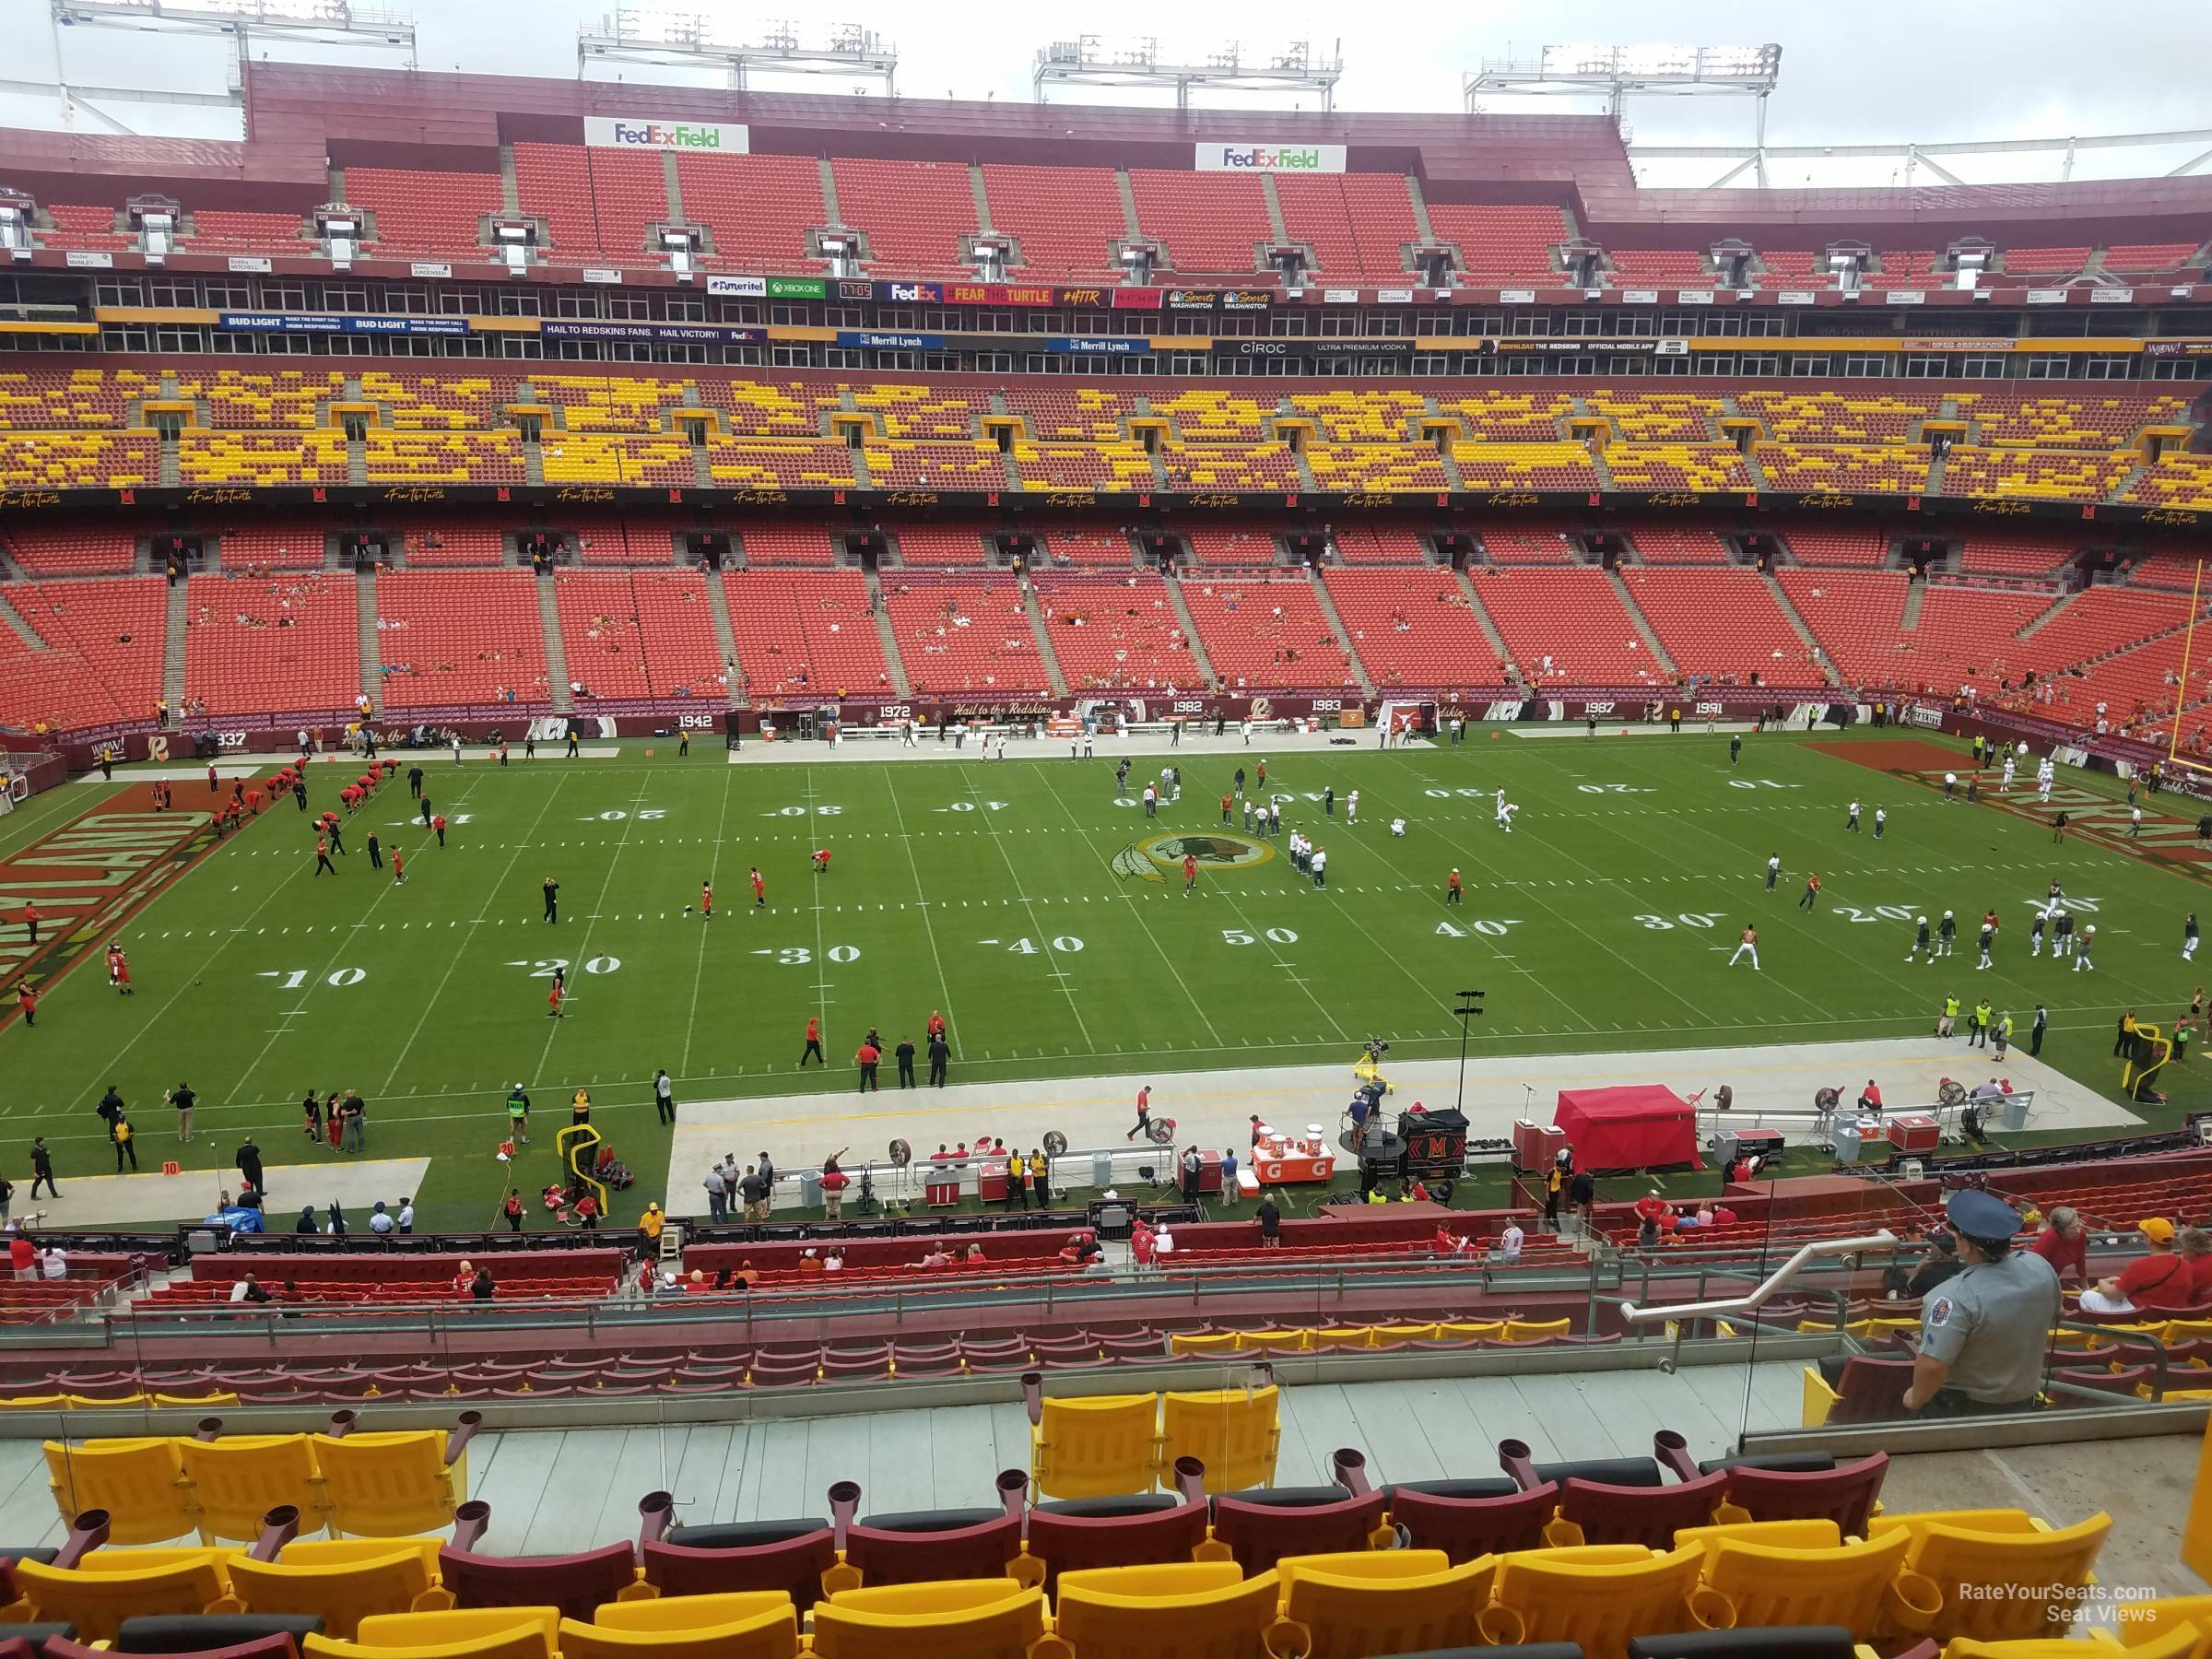 Seat View For Fedexfield Zone A Club 302 Row 16